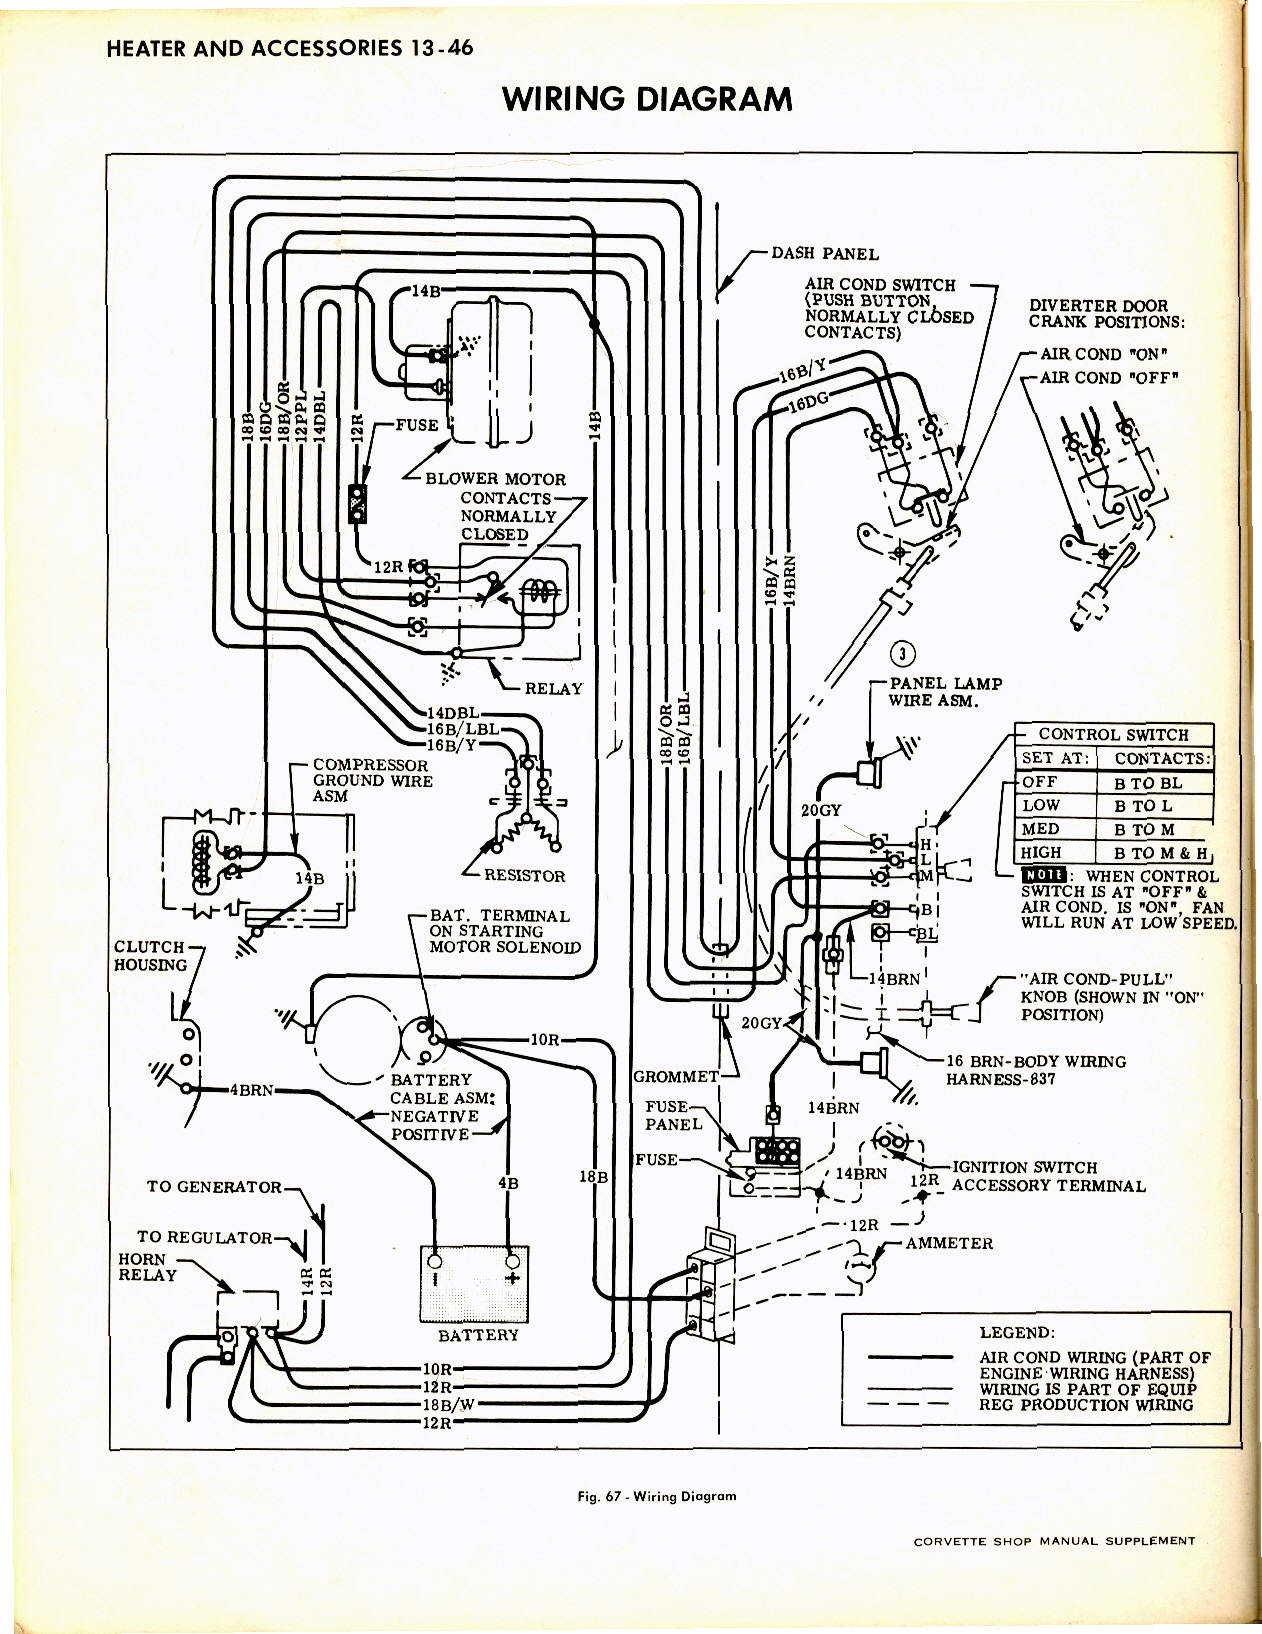 hight resolution of 1974 corvette wiring diagram pdf